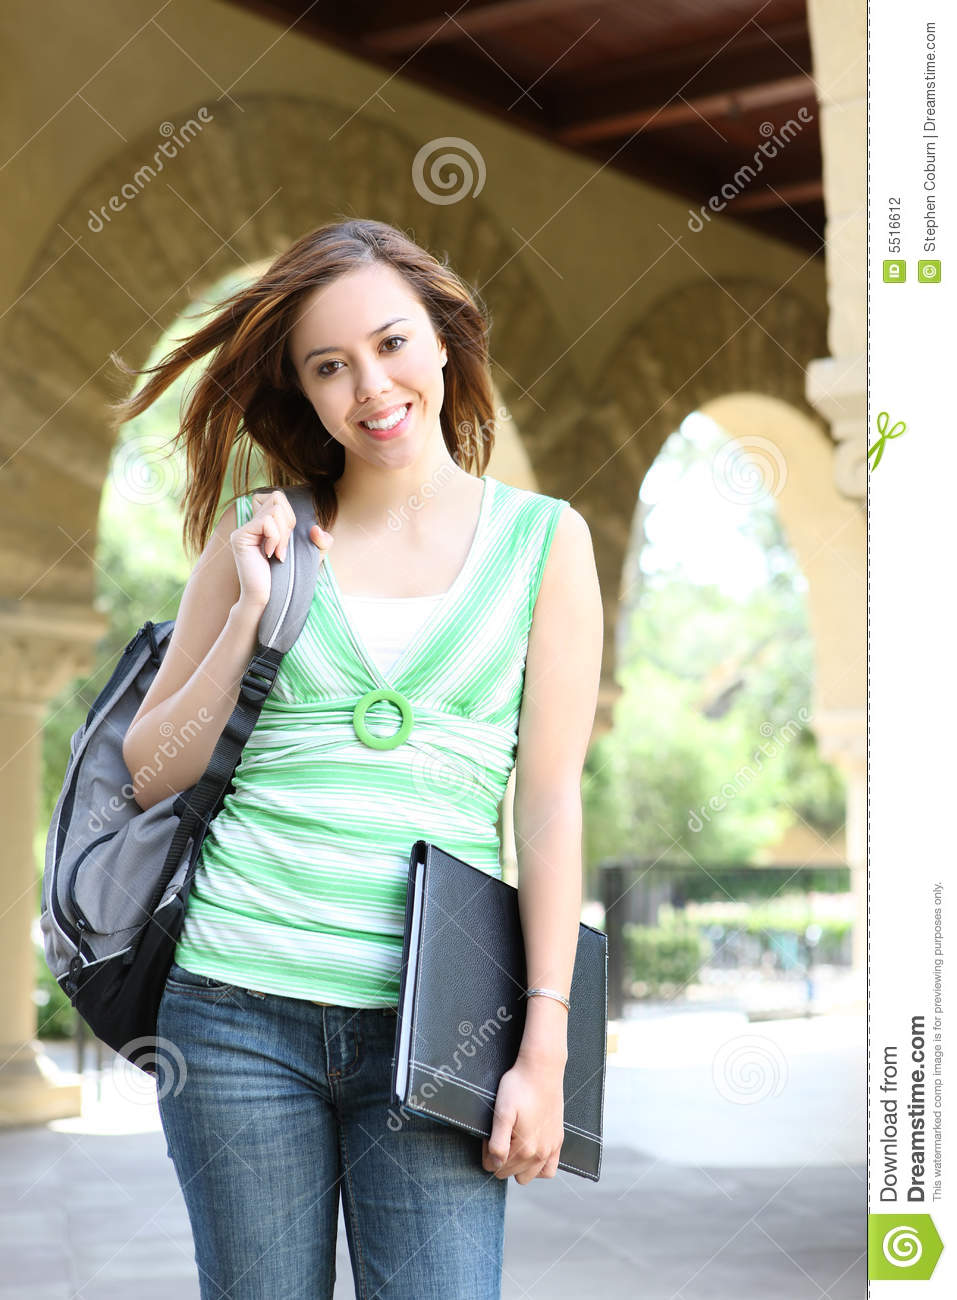 Cute Girl Walking On College Campus Stock Photography -3295